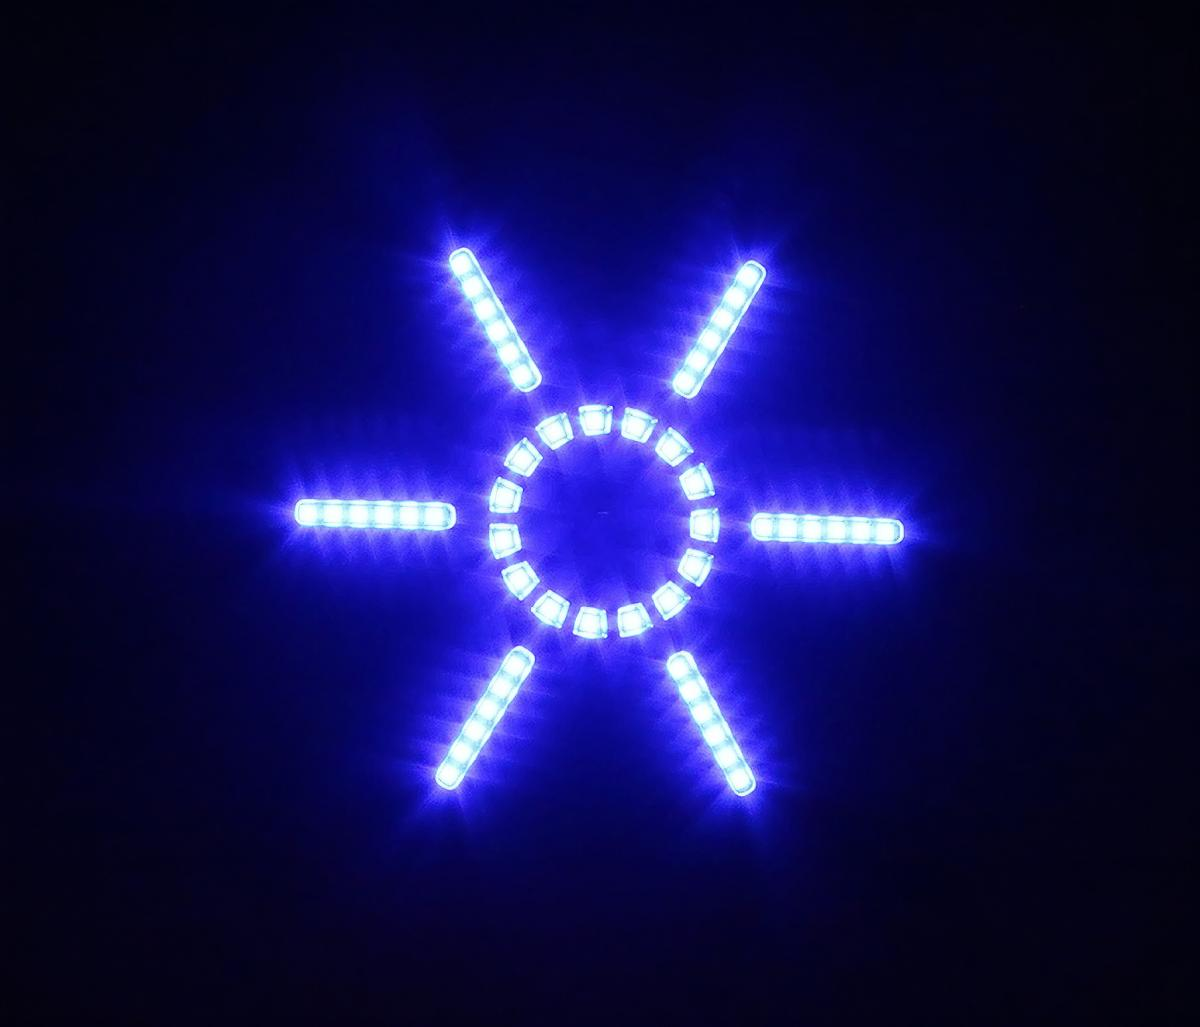 Led Star CB-06